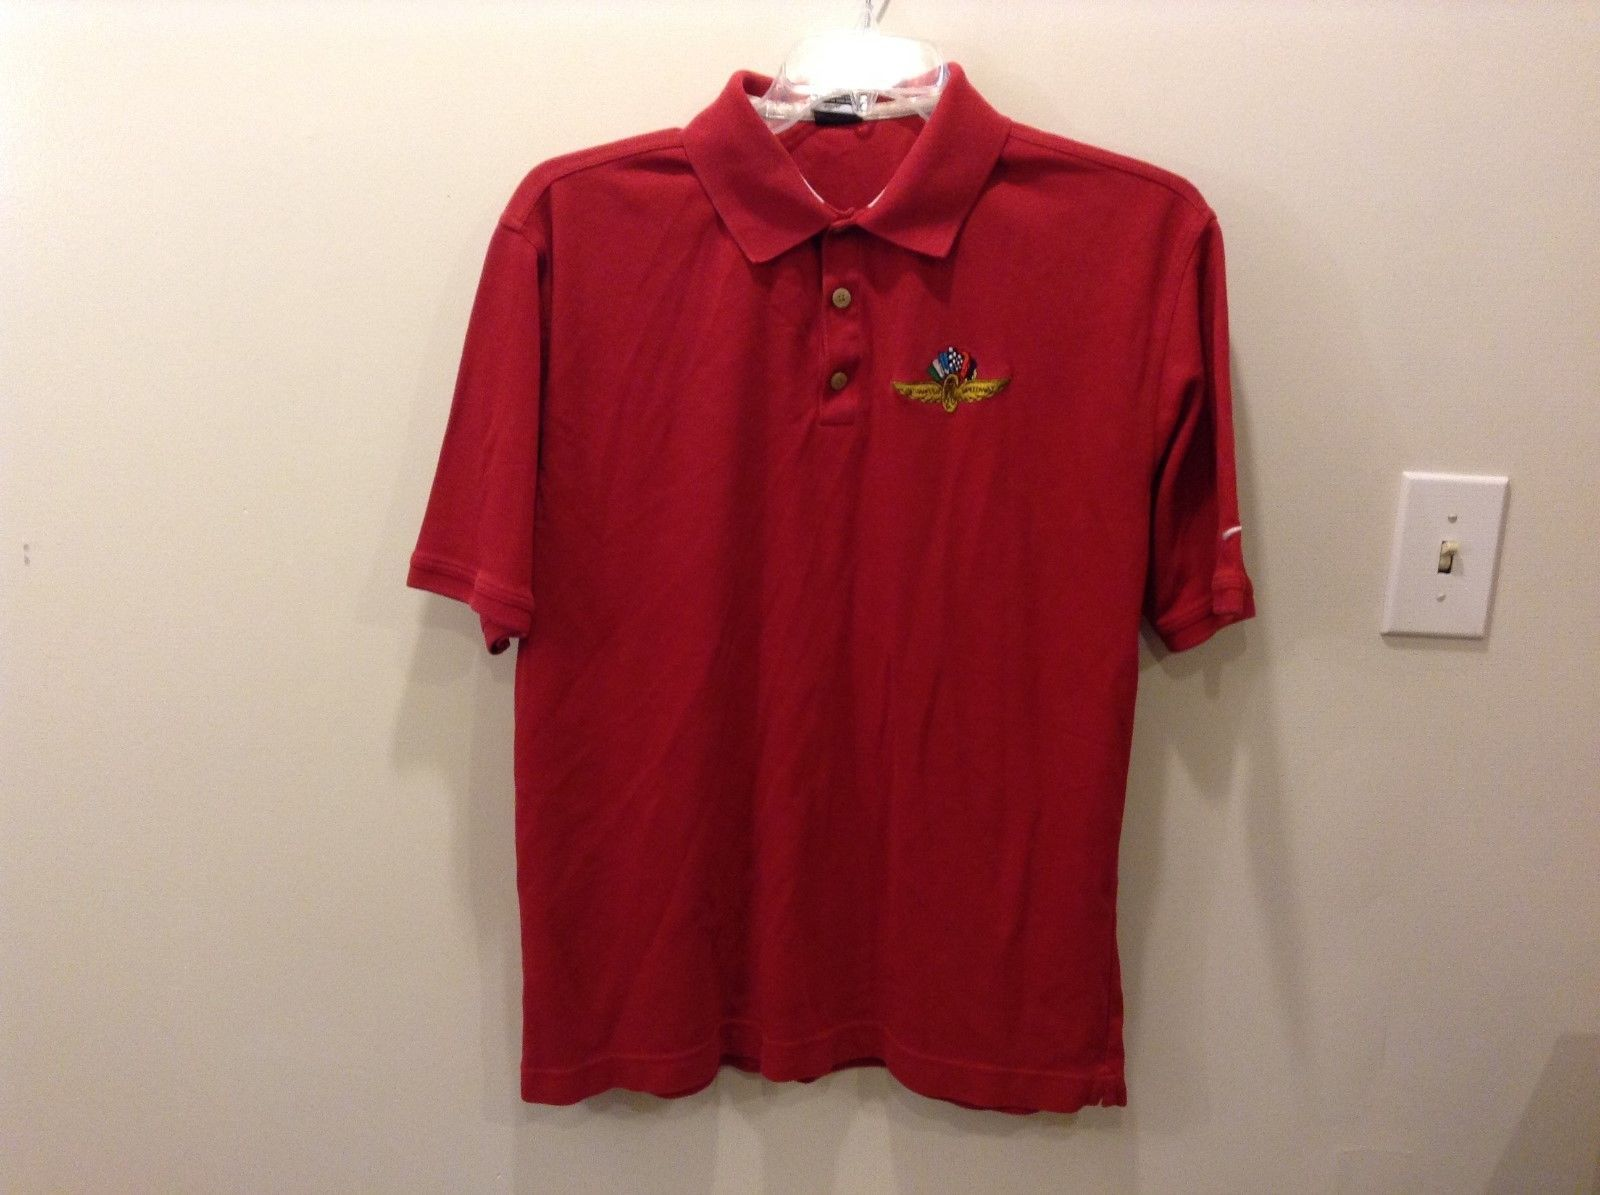 NIKE Dry-Fit Indianapolis Motor Speedway Red Polo T-Shirt Size Large